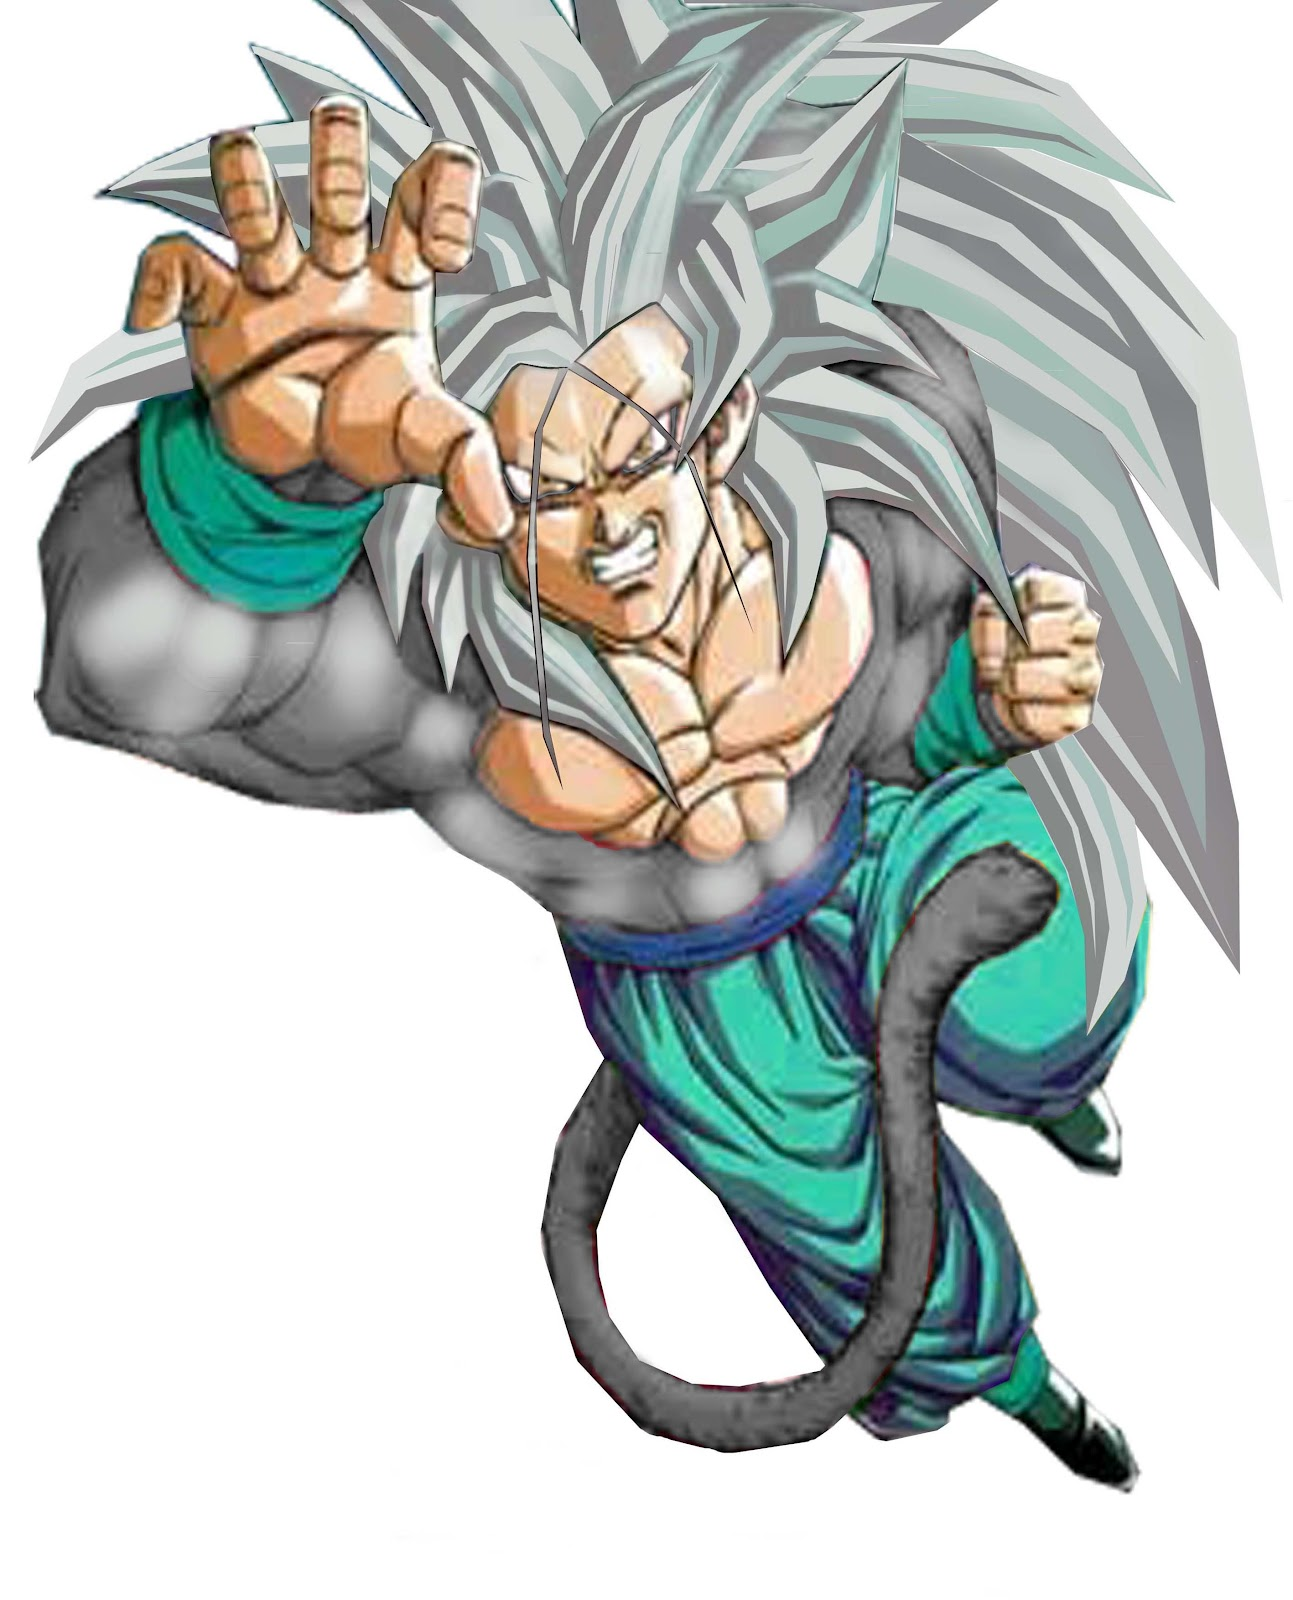 Dragon ball z wallpapers gogeta super saiyan 5 - Goku 5 super saiyan ...